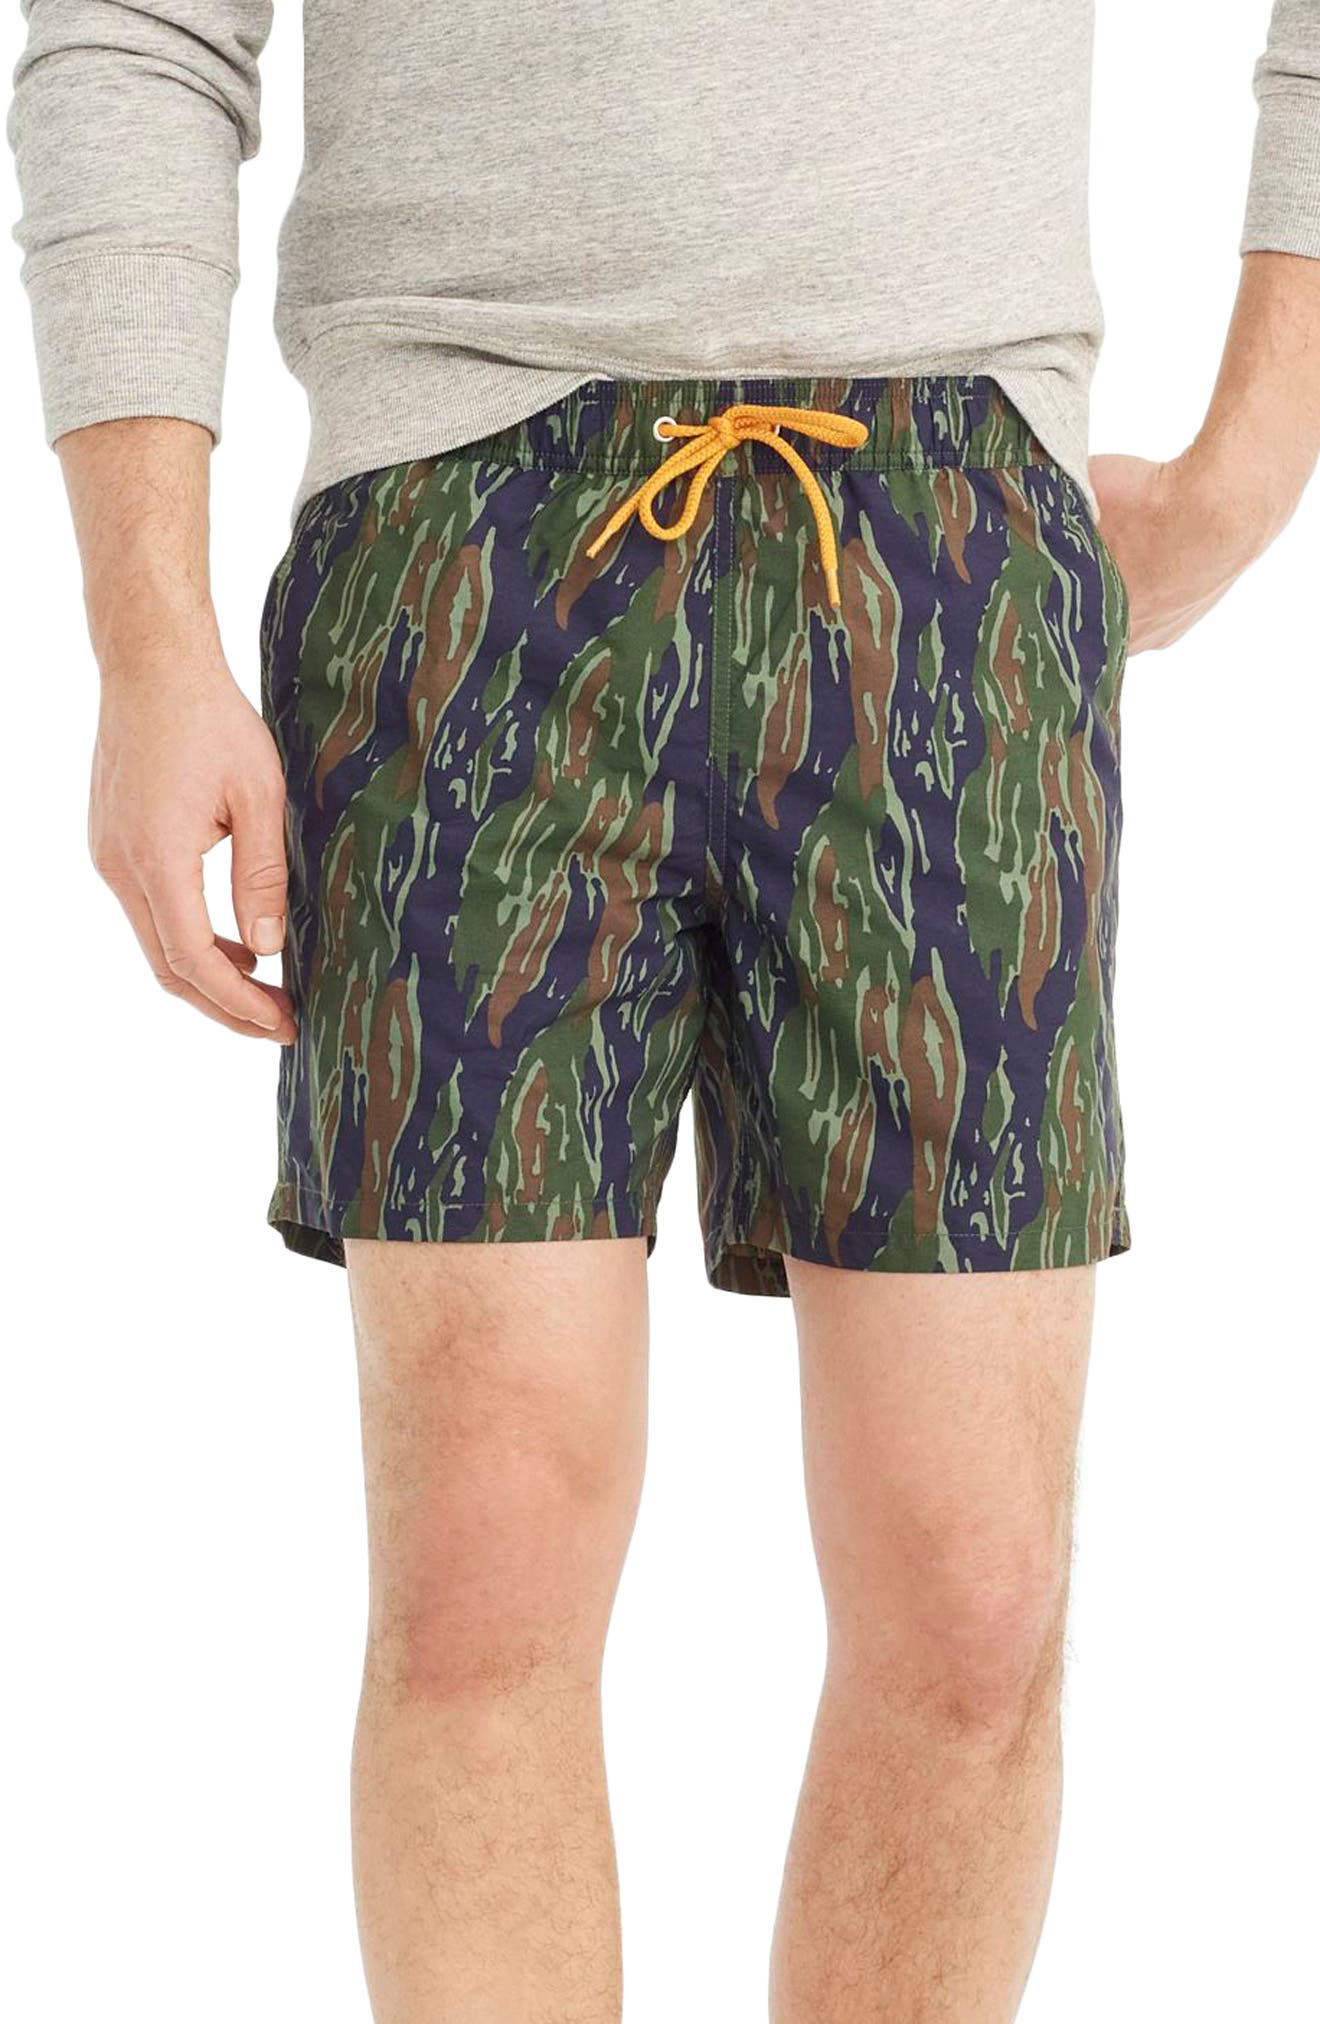 J.Crew Camo Swim Trunks,                             Main thumbnail 1, color,                             Tiger Stripe Camo